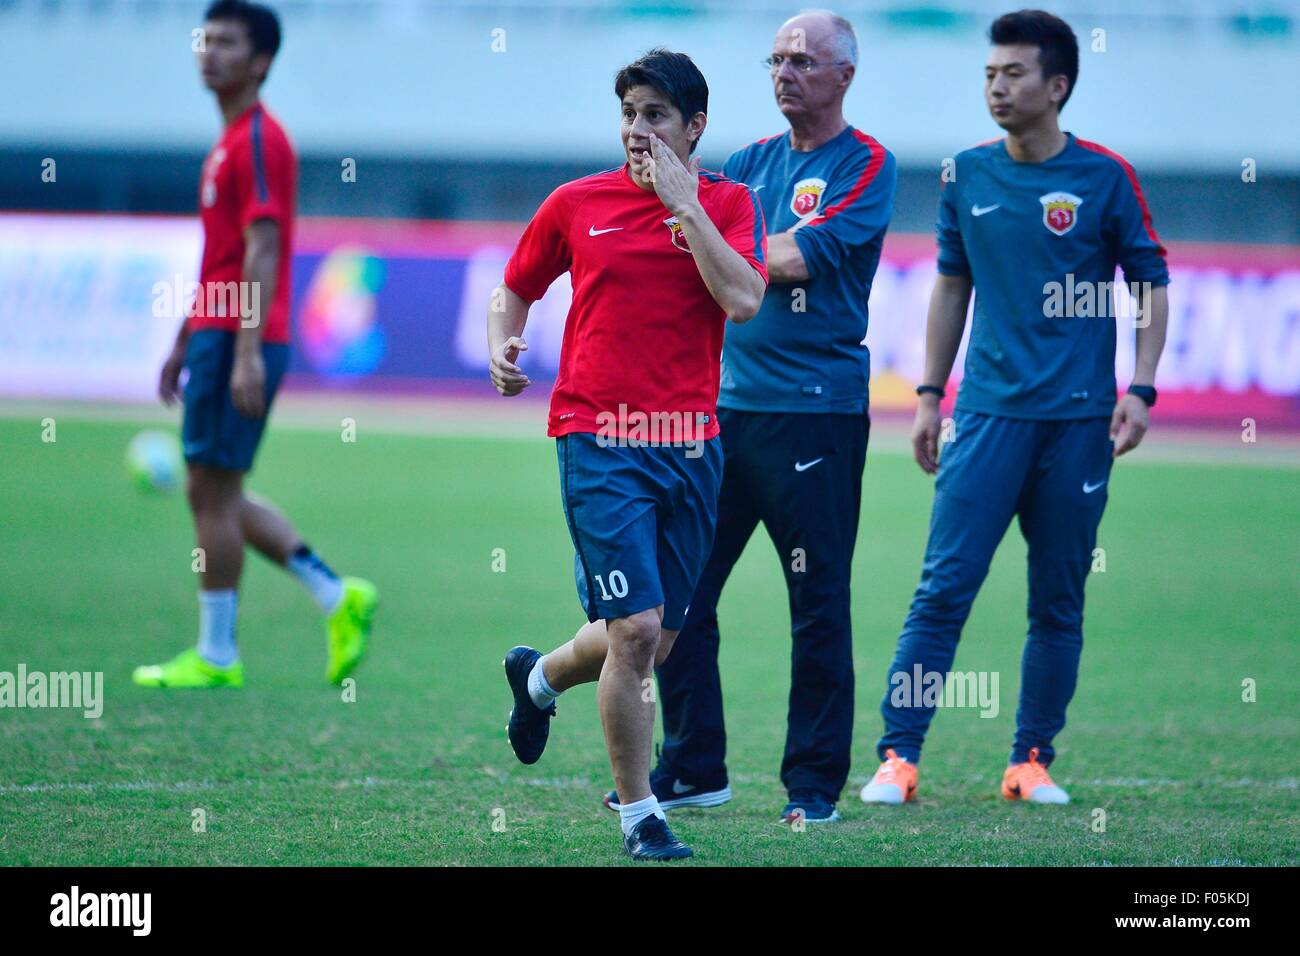 Shanghai China 3rd Aug 2015 Shanghai SIPG forward DARIO CONCA